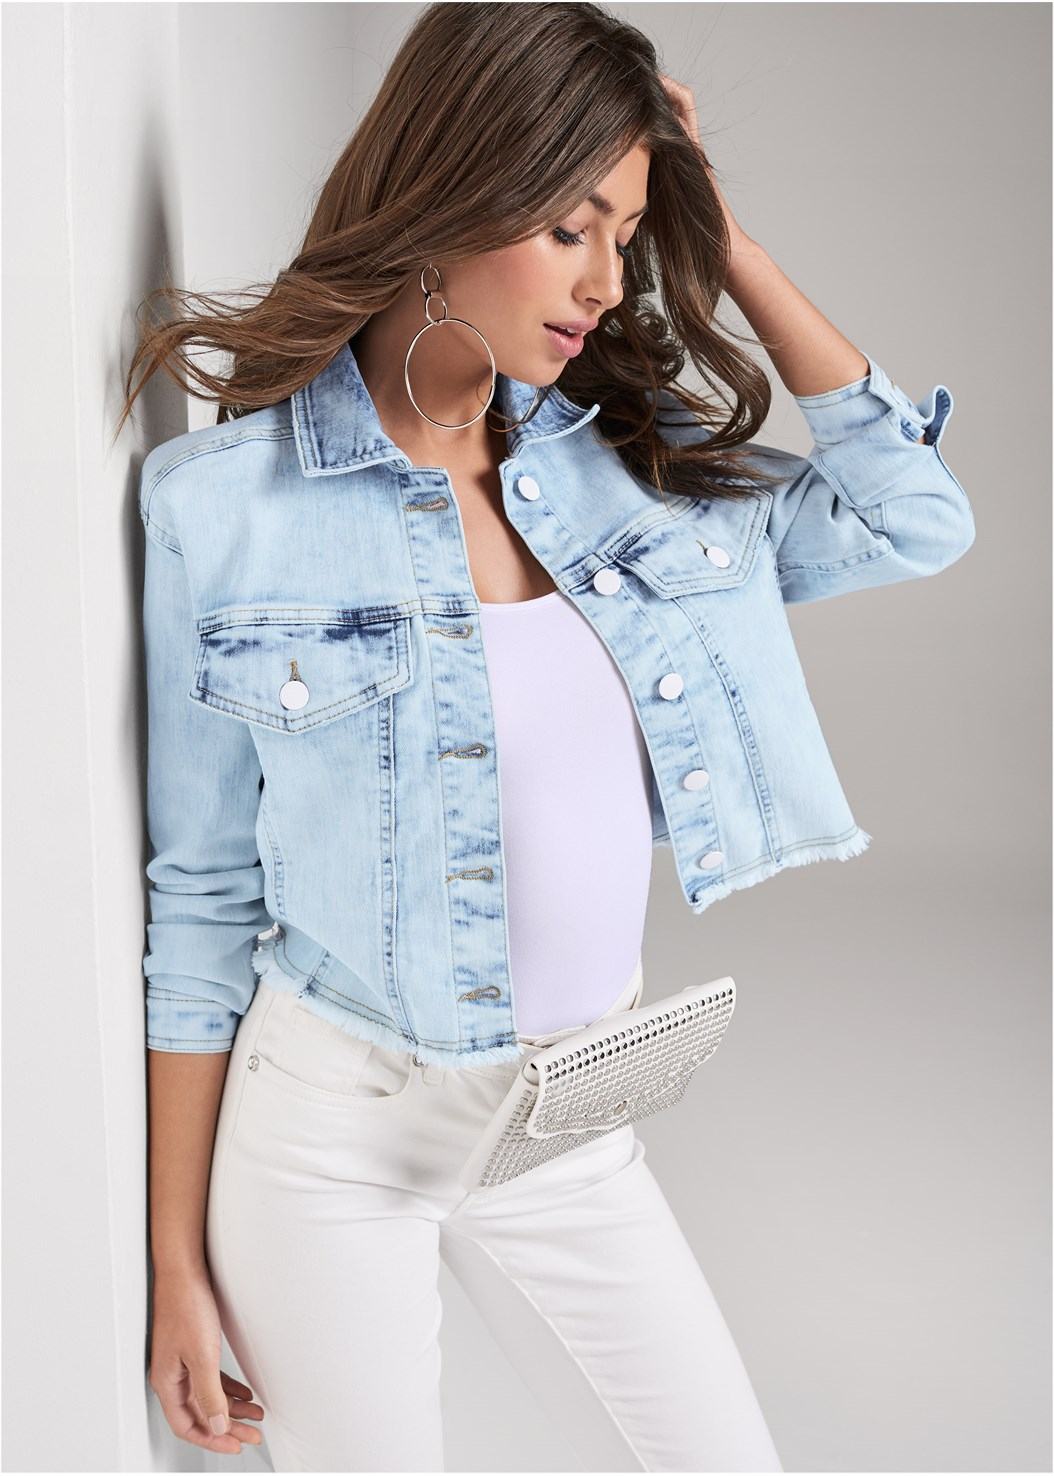 Acid Wash Denim Jacket,Basic Cami Two Pack,Mid Rise Color Skinny Jeans,Ruched Bodycon  Side Slit Maxi Dress,Push Up Bra Buy 2 For $40,High Heel Strappy Sandals,Beaded Fringe Earrings,Hoop Earrings,Studded Belt Bag,Beaded Crossbody